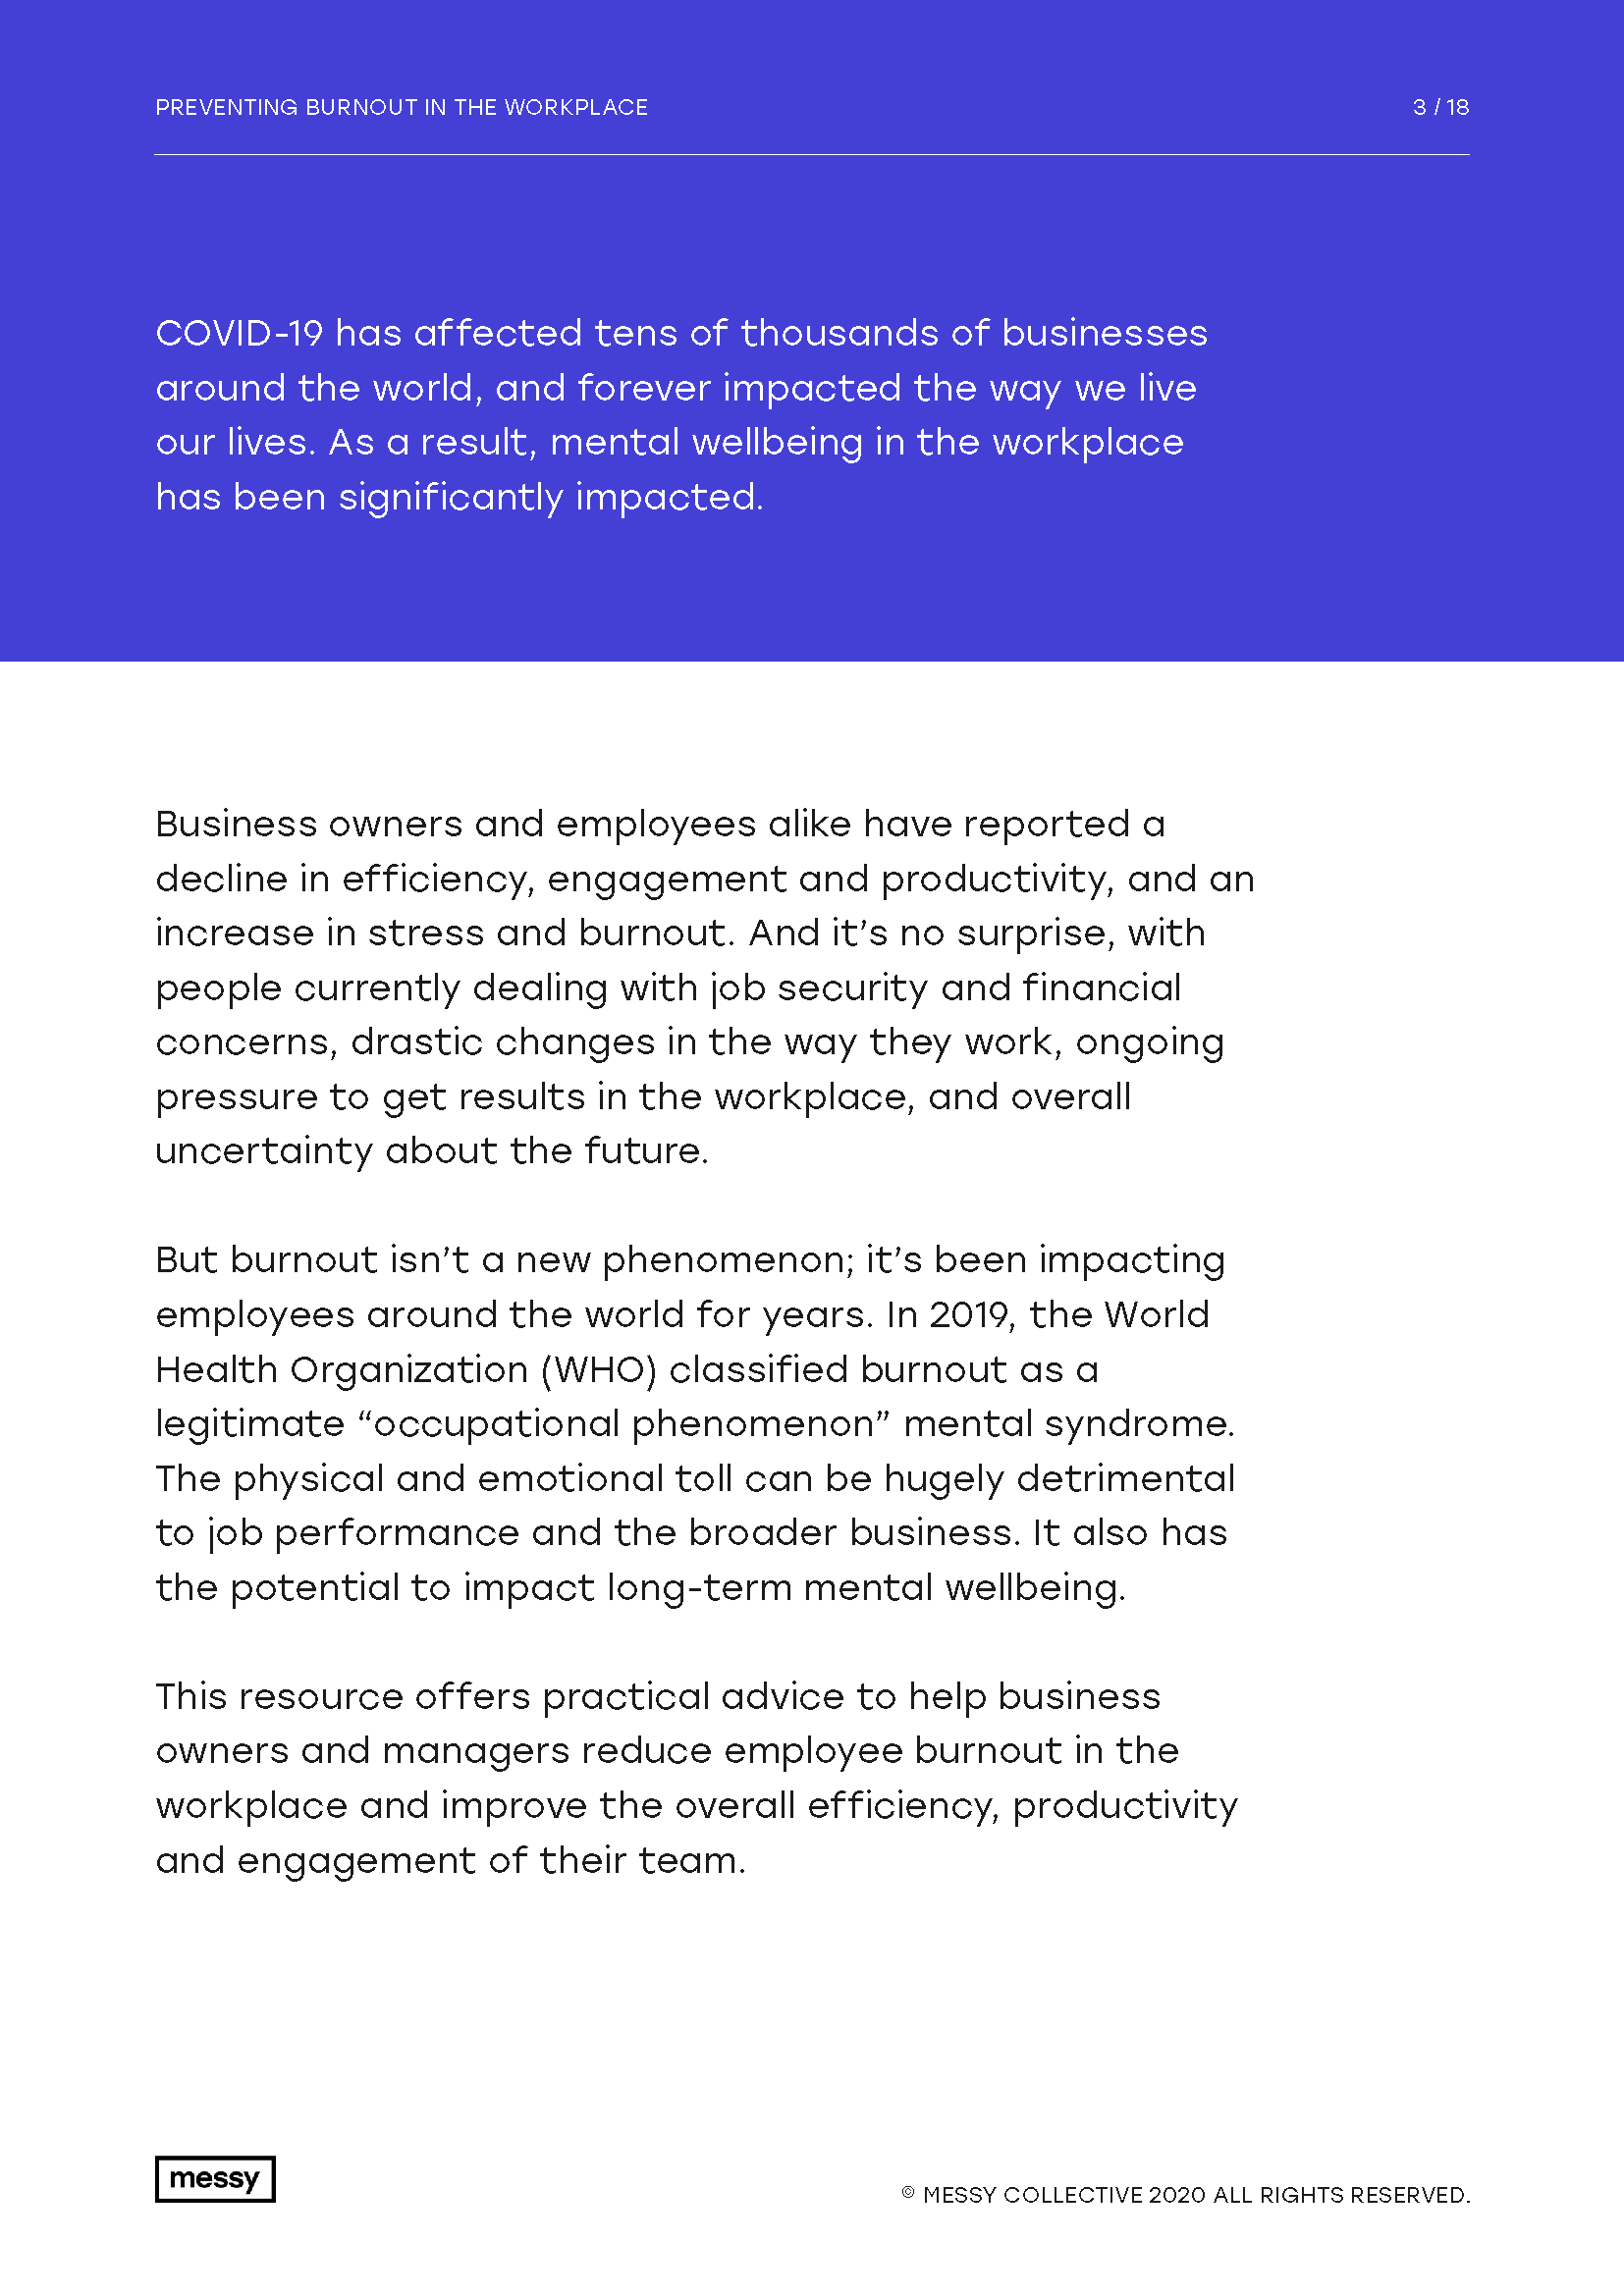 Preventing Burnout in the Workplace guide - page 3